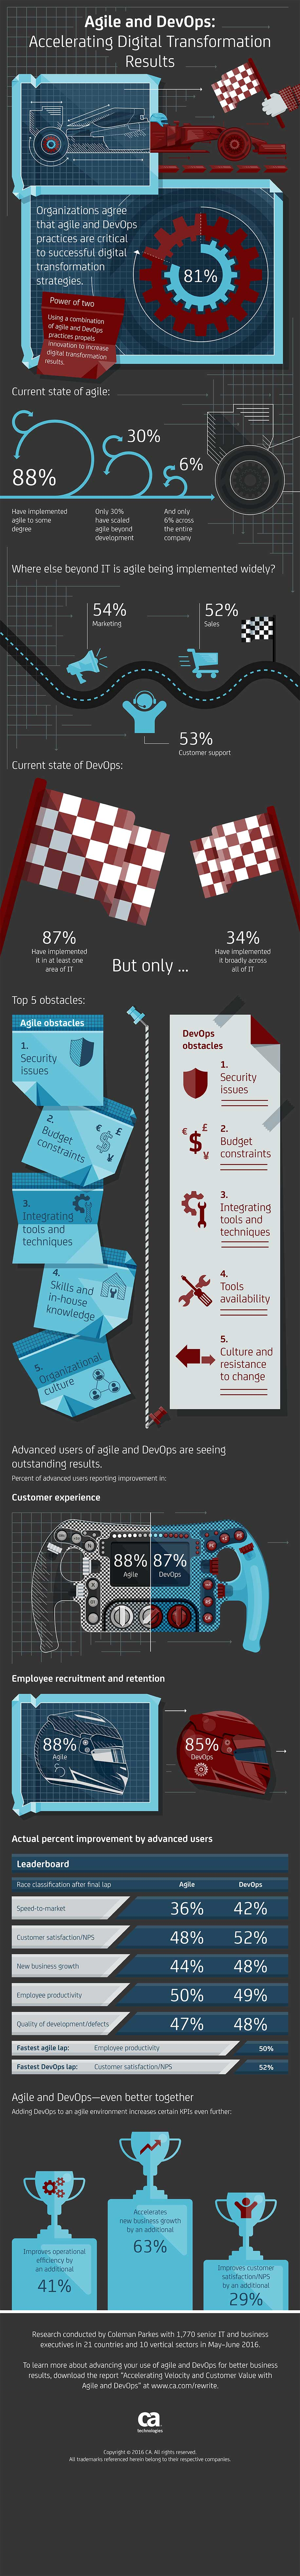 Agile-and-DevOps-Accelerating-Digital-Transformation-Results-Infographic